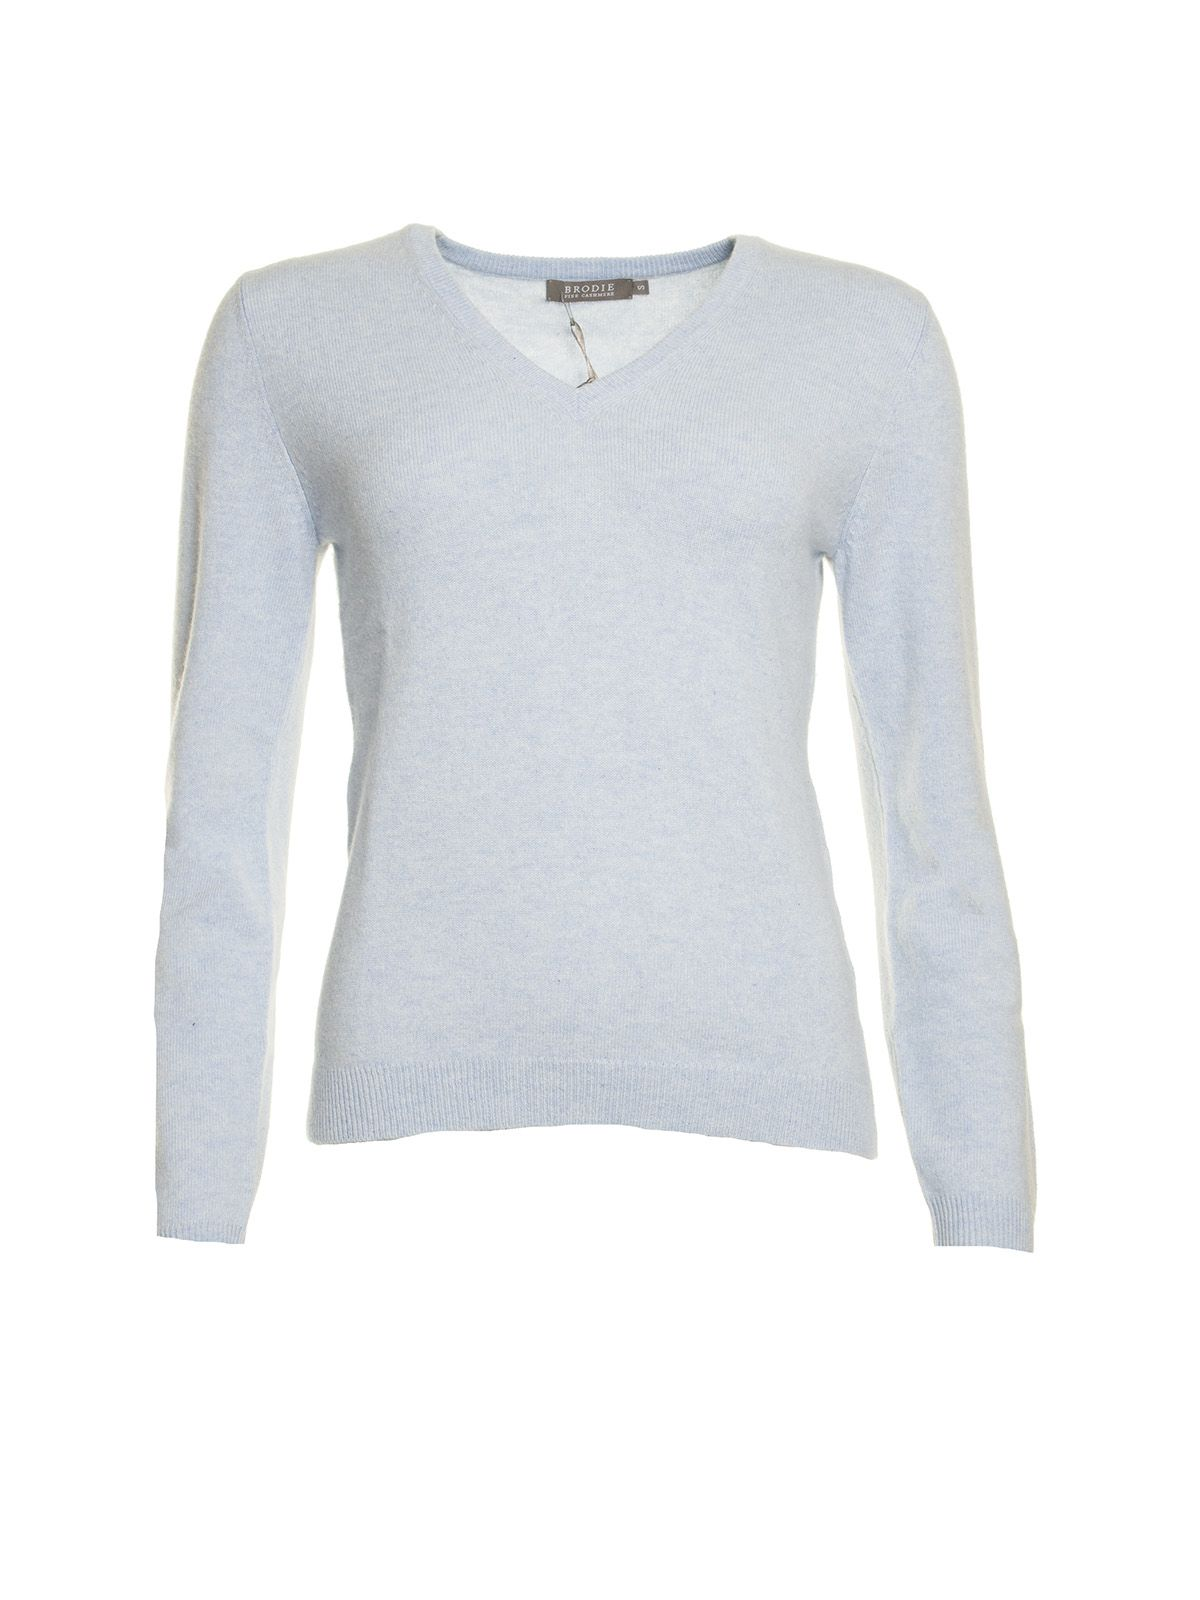 a4ab2d15922 V Neck Jumper Brodie Fine Cashmere Katie Kerr Women's Clothing